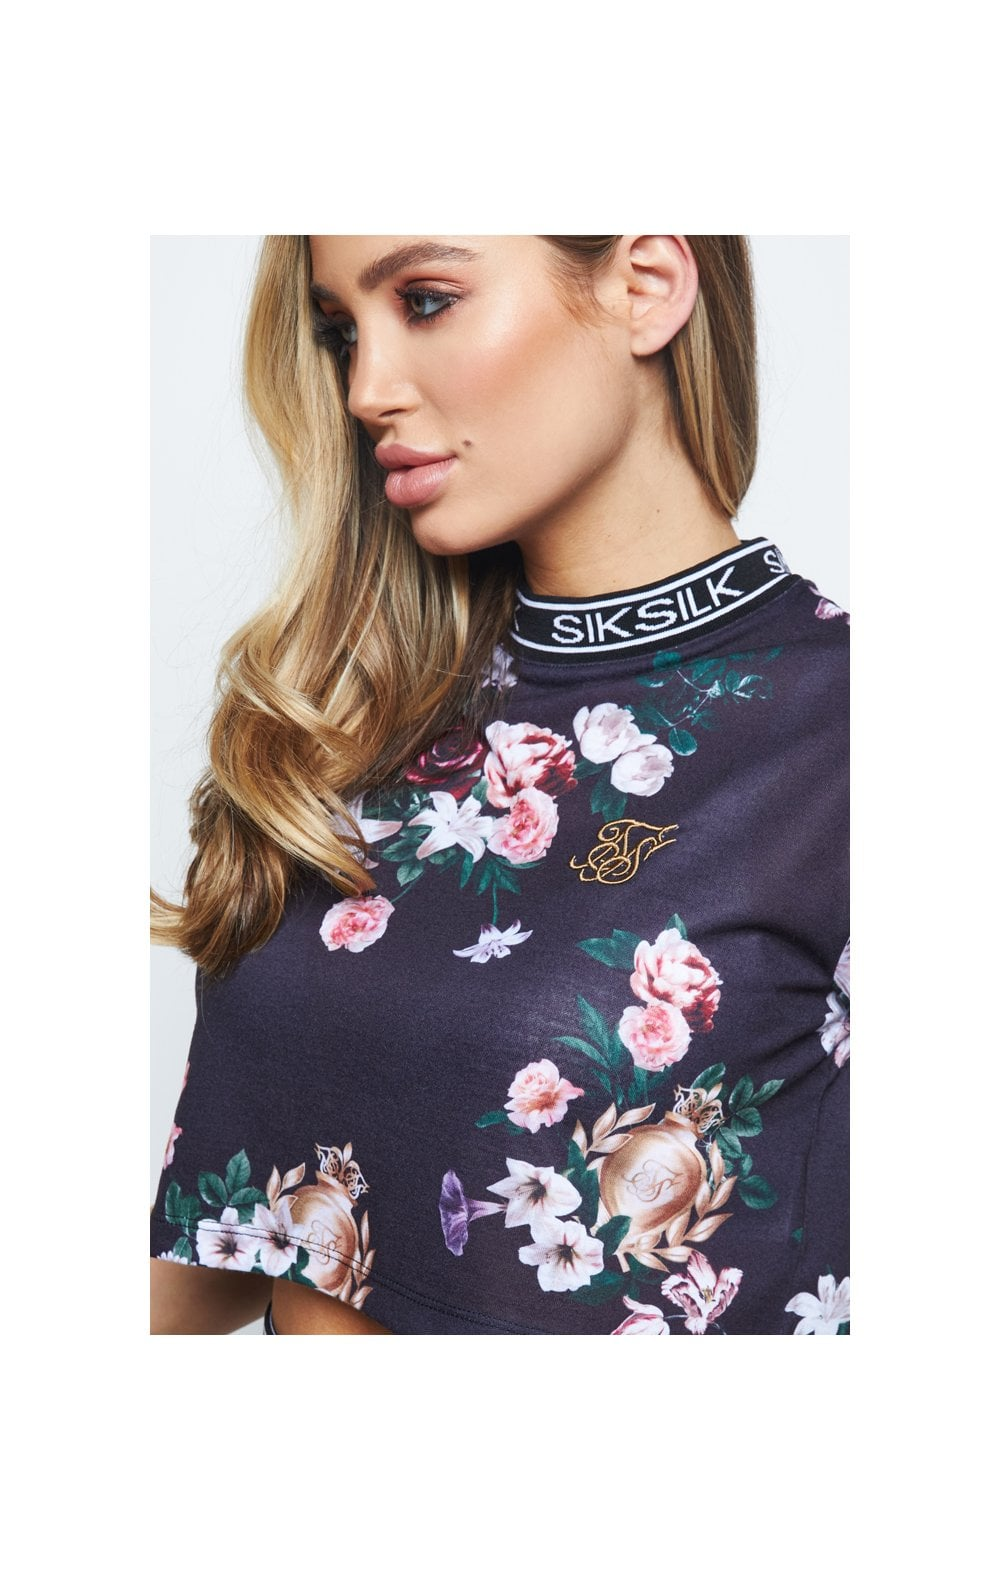 SikSilk Prestige Floral Box Tee - Black